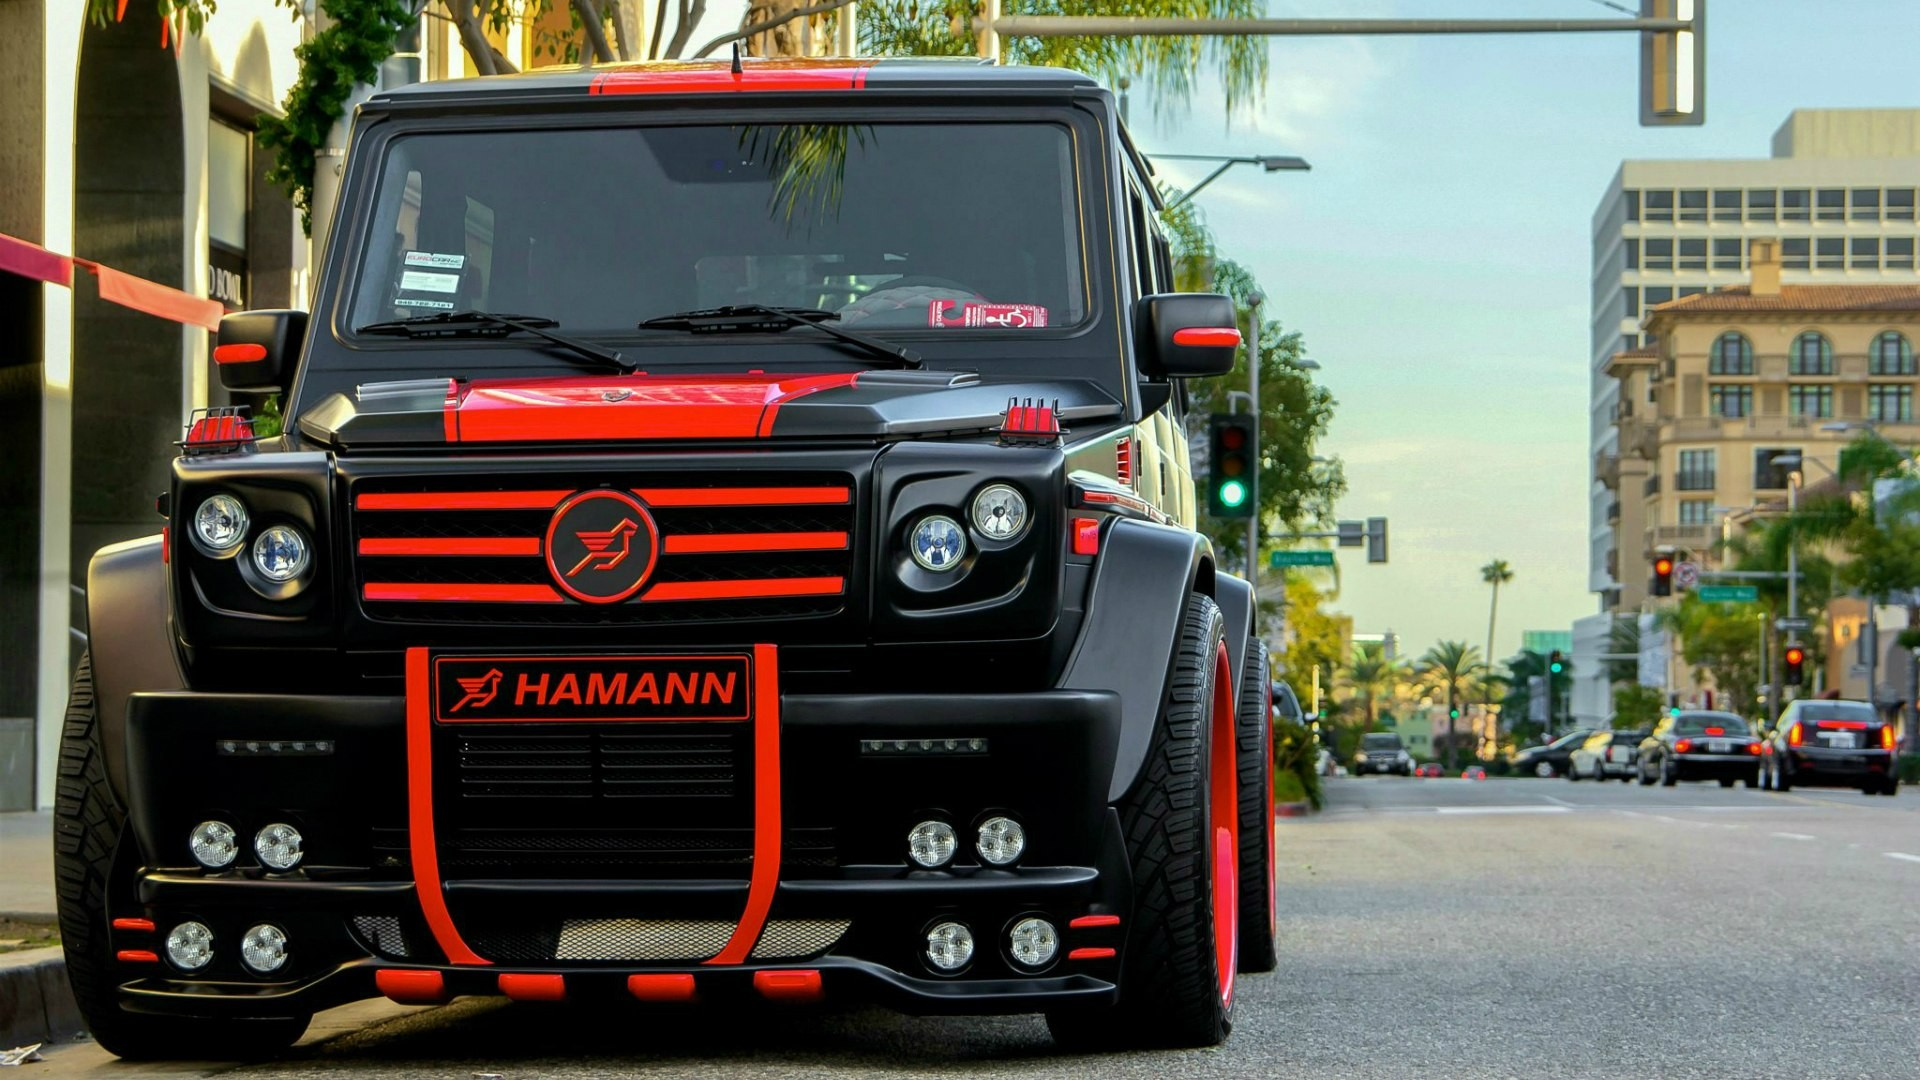 1 Mercedes Benz G55 Amg Hd Wallpapers Backgrounds